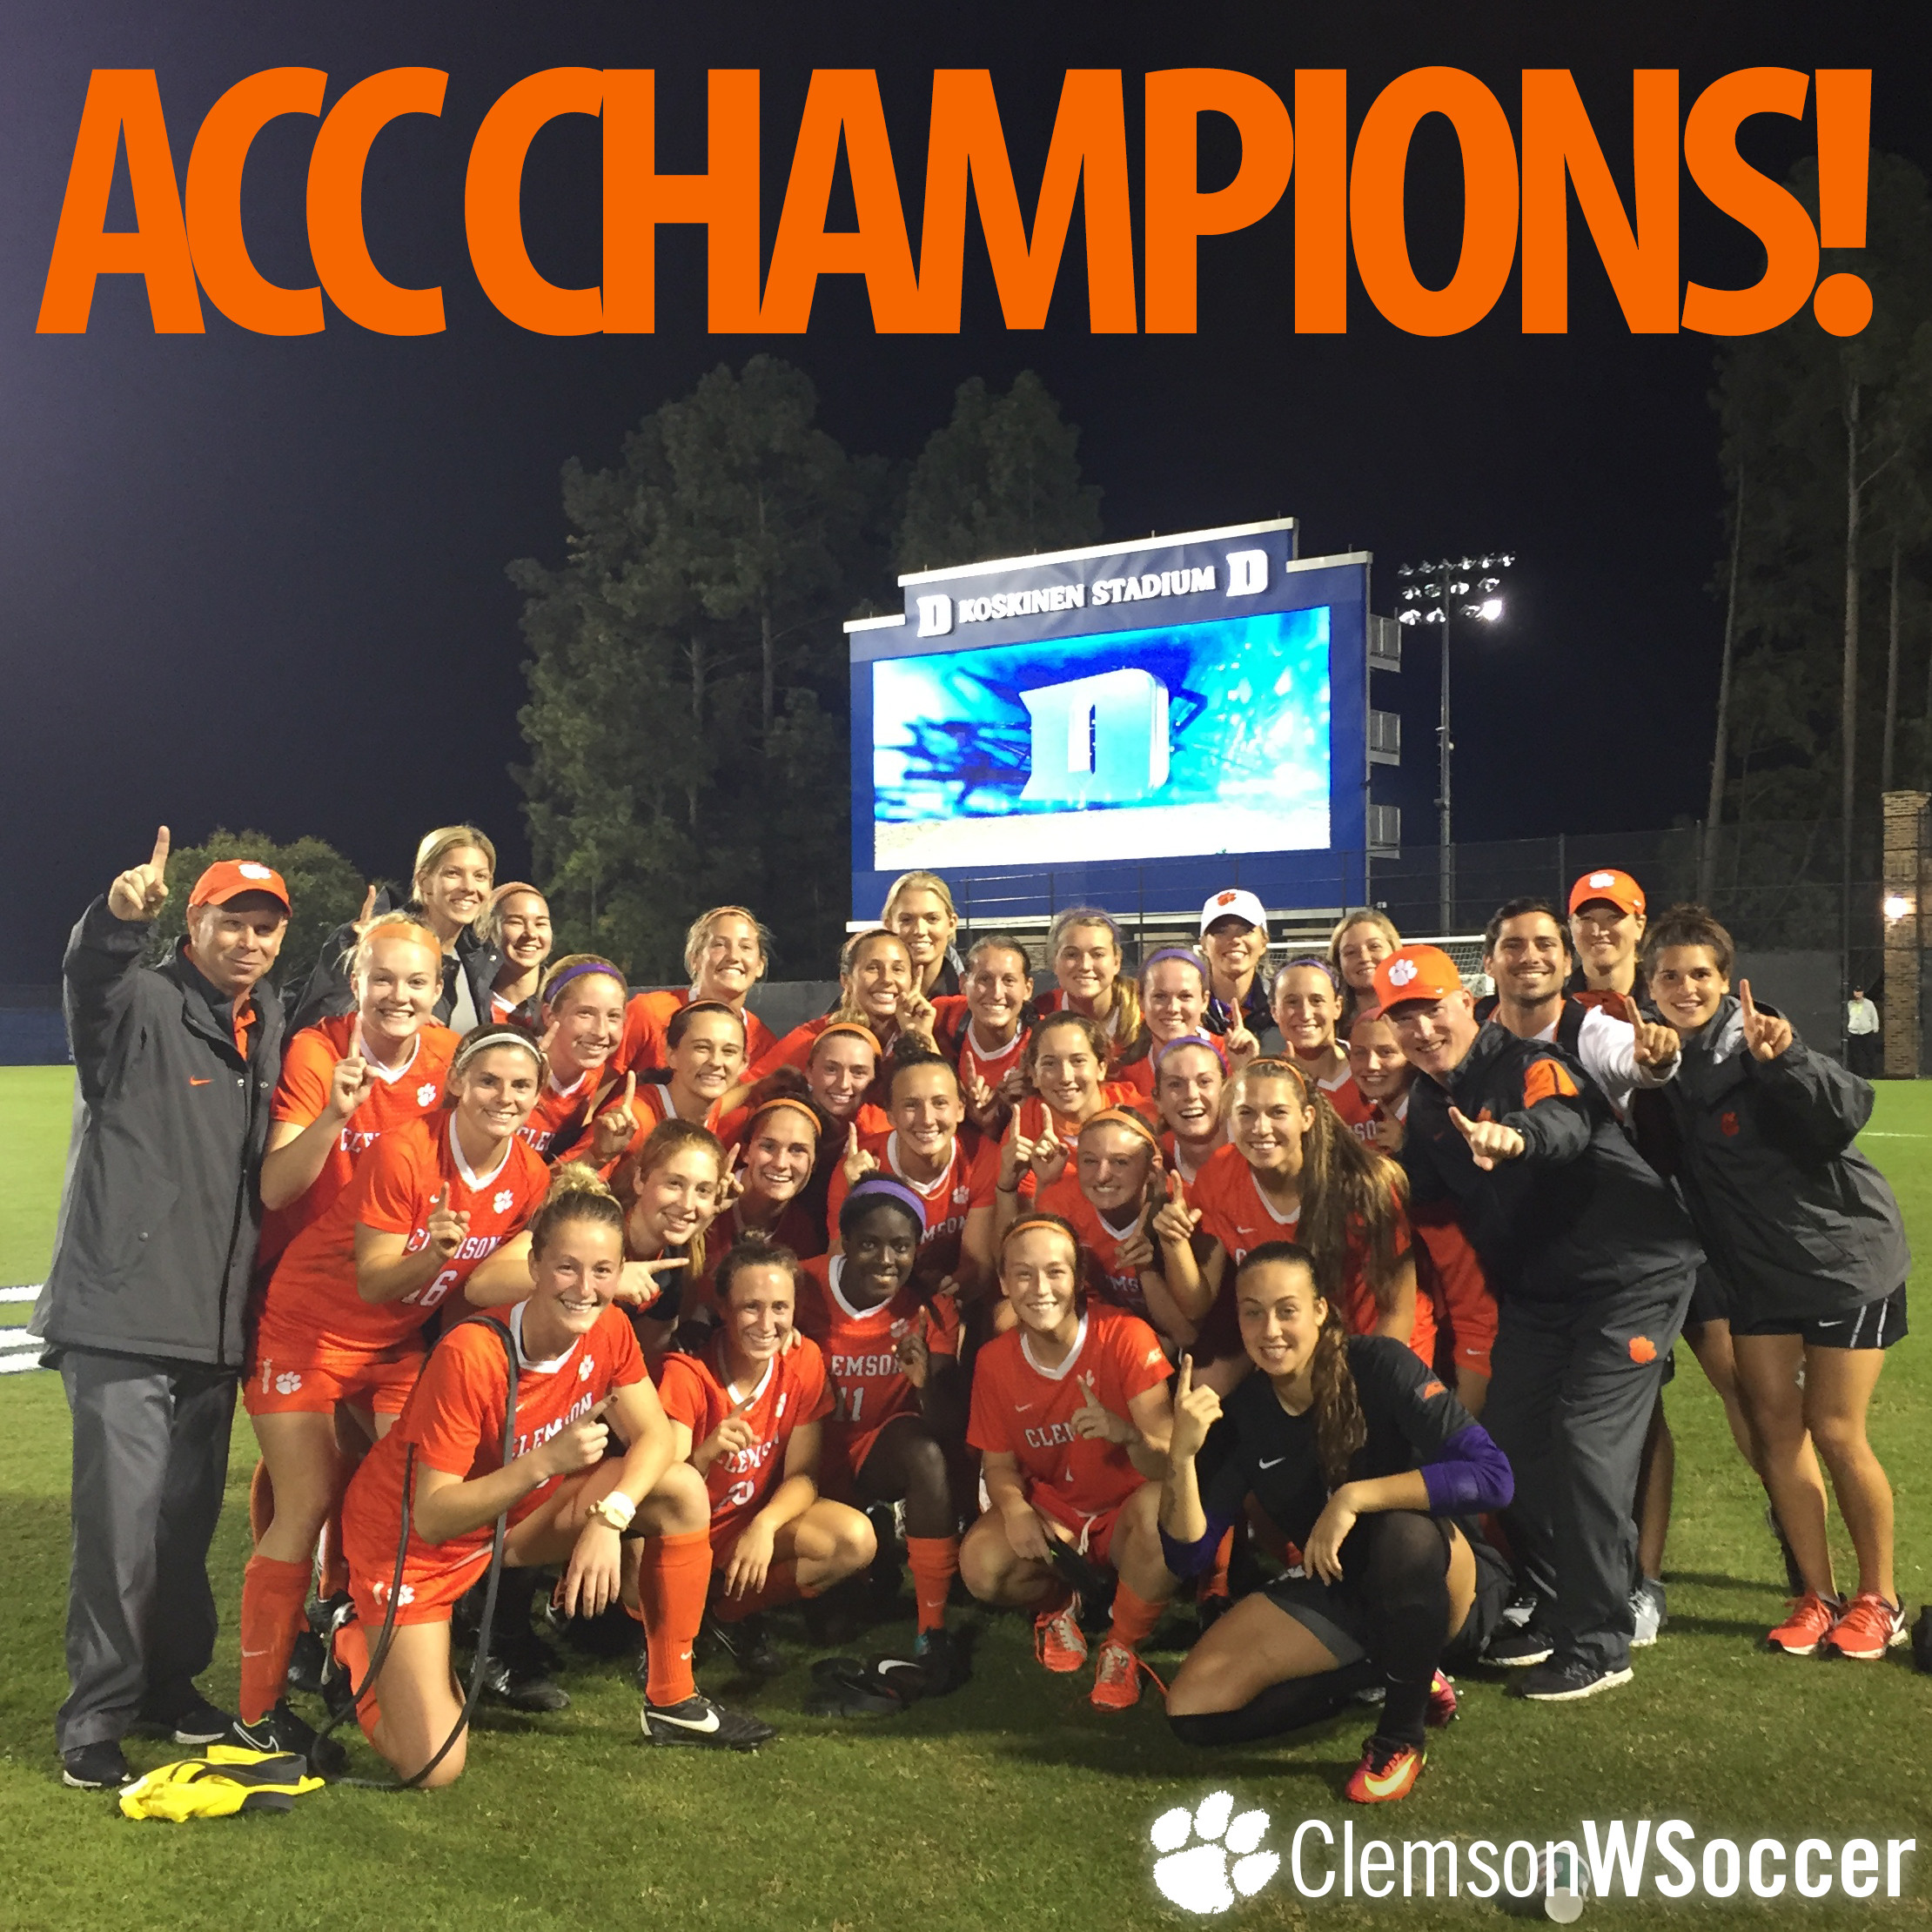 ACC Champions! No. 14 Clemson Wins ACC Regular Season Crown with Upset of No. 6 Duke